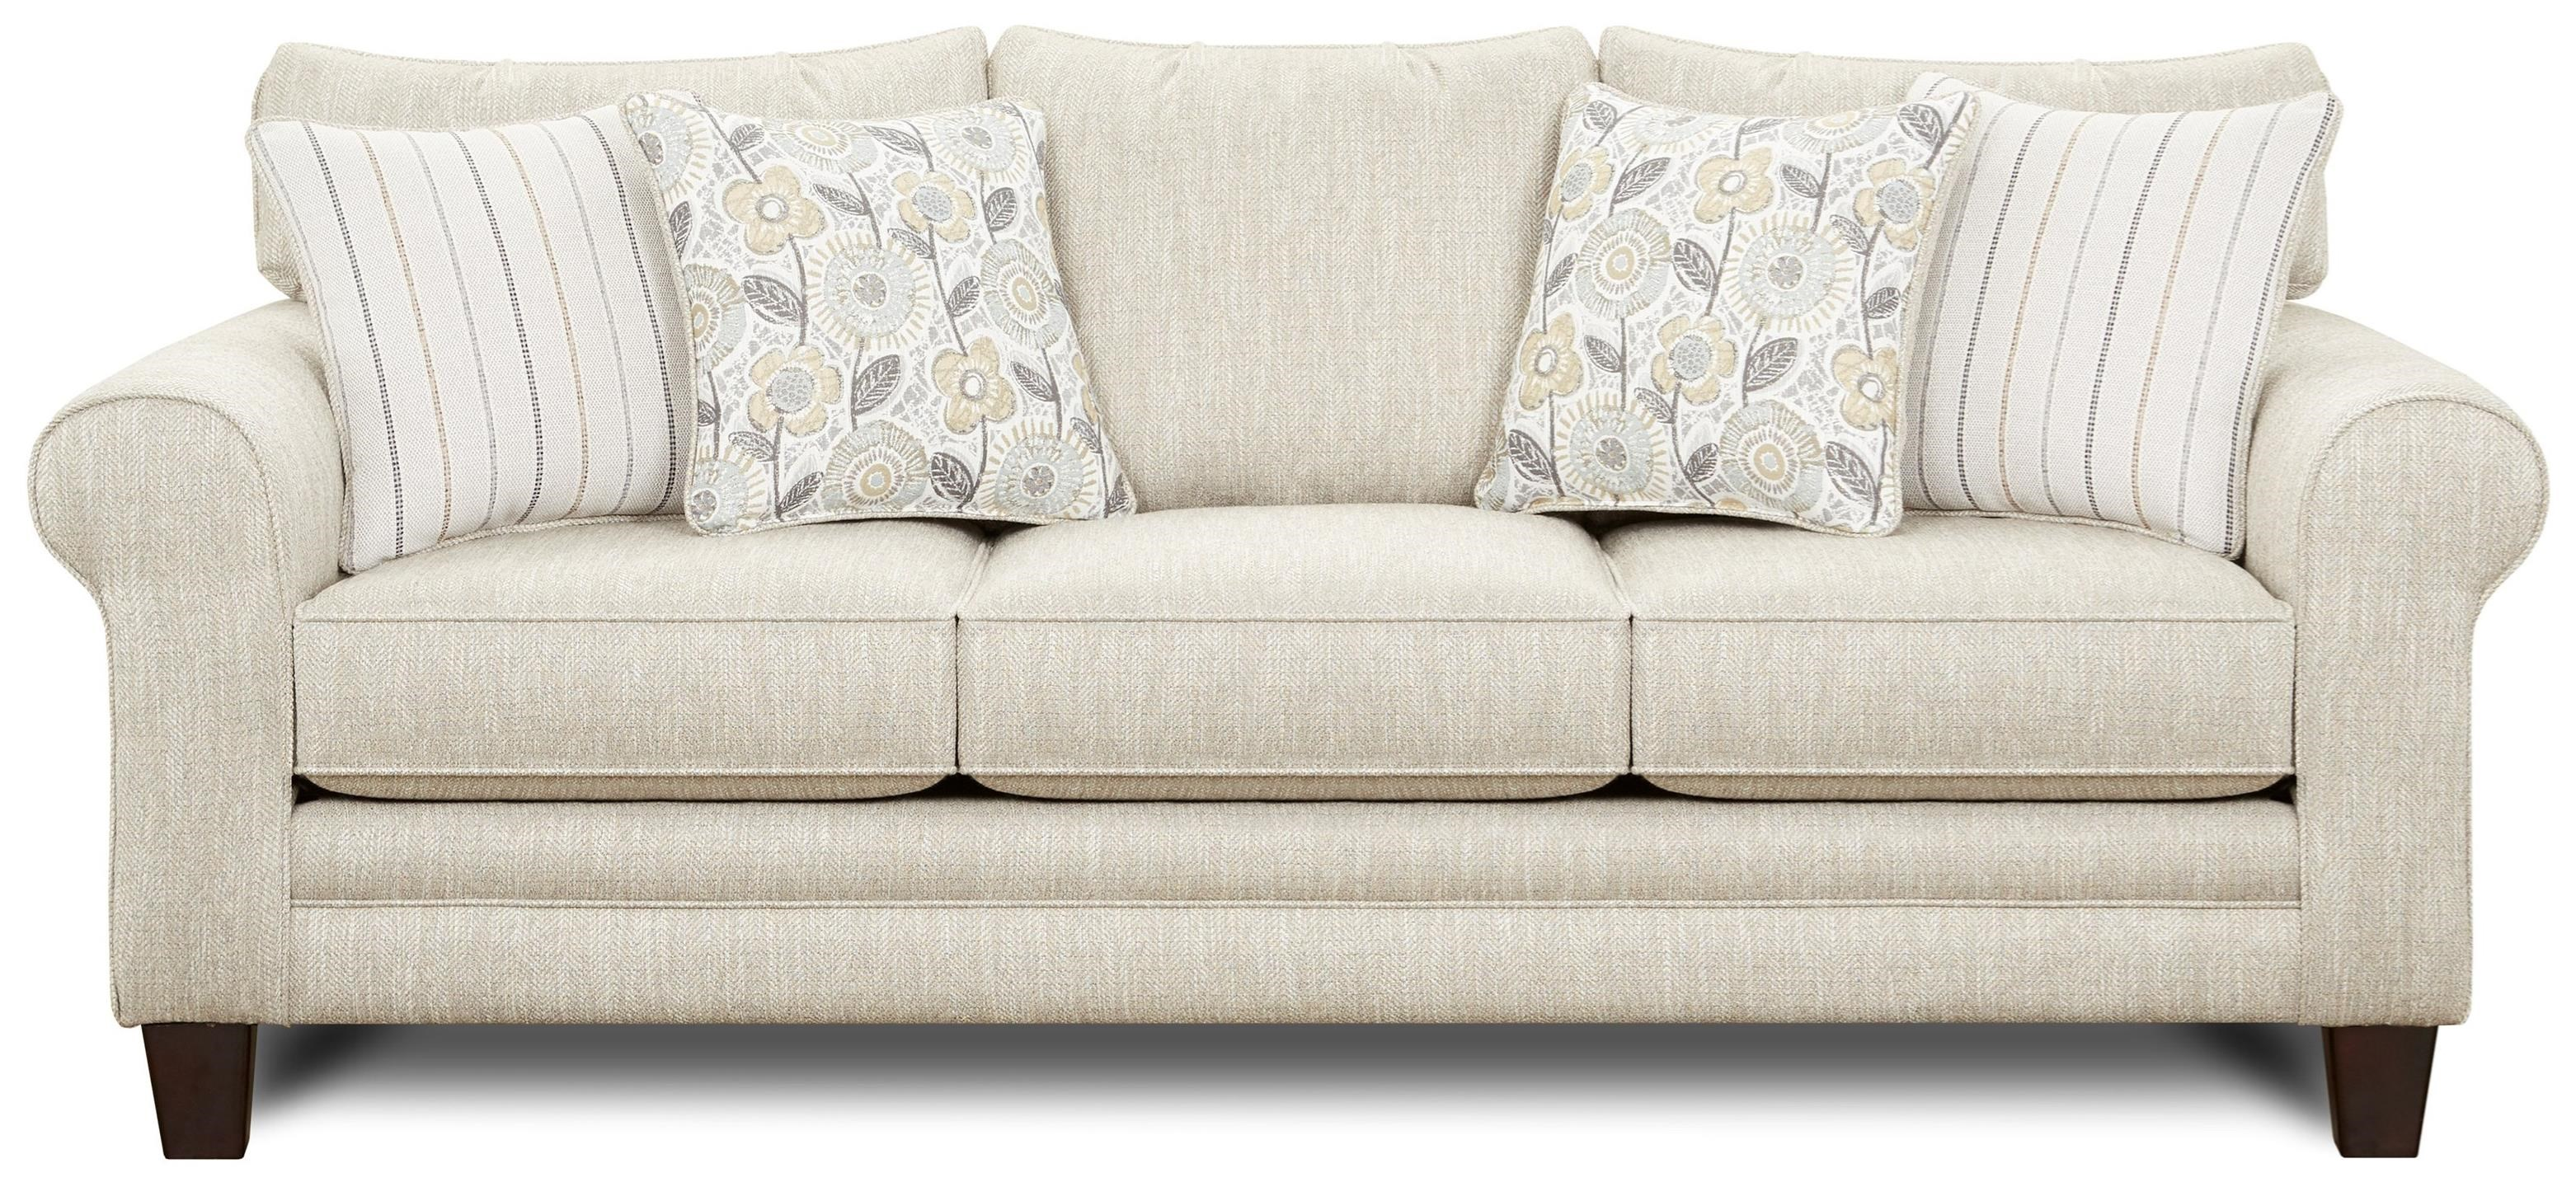 1140 Sofa by Fusion Furniture at Miller Waldrop Furniture and Decor